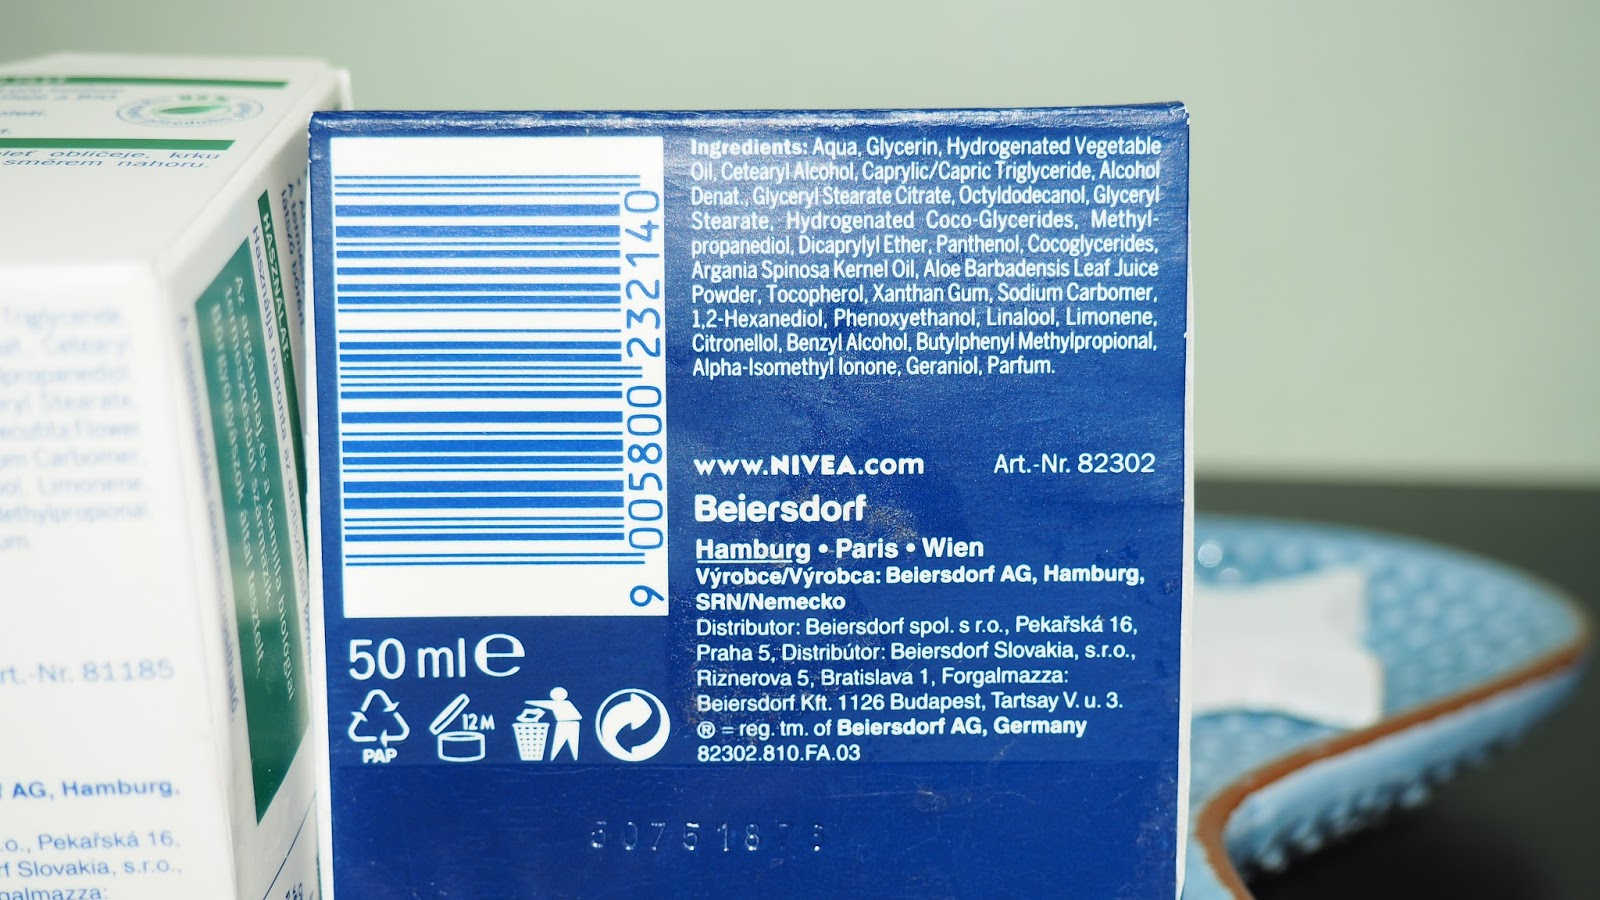 4 ps of nivea Nivea eau de toilette by nivea is a powdery-floral fragrance for women and men buy nivea eau de toilette samples and decants here perfume sample.